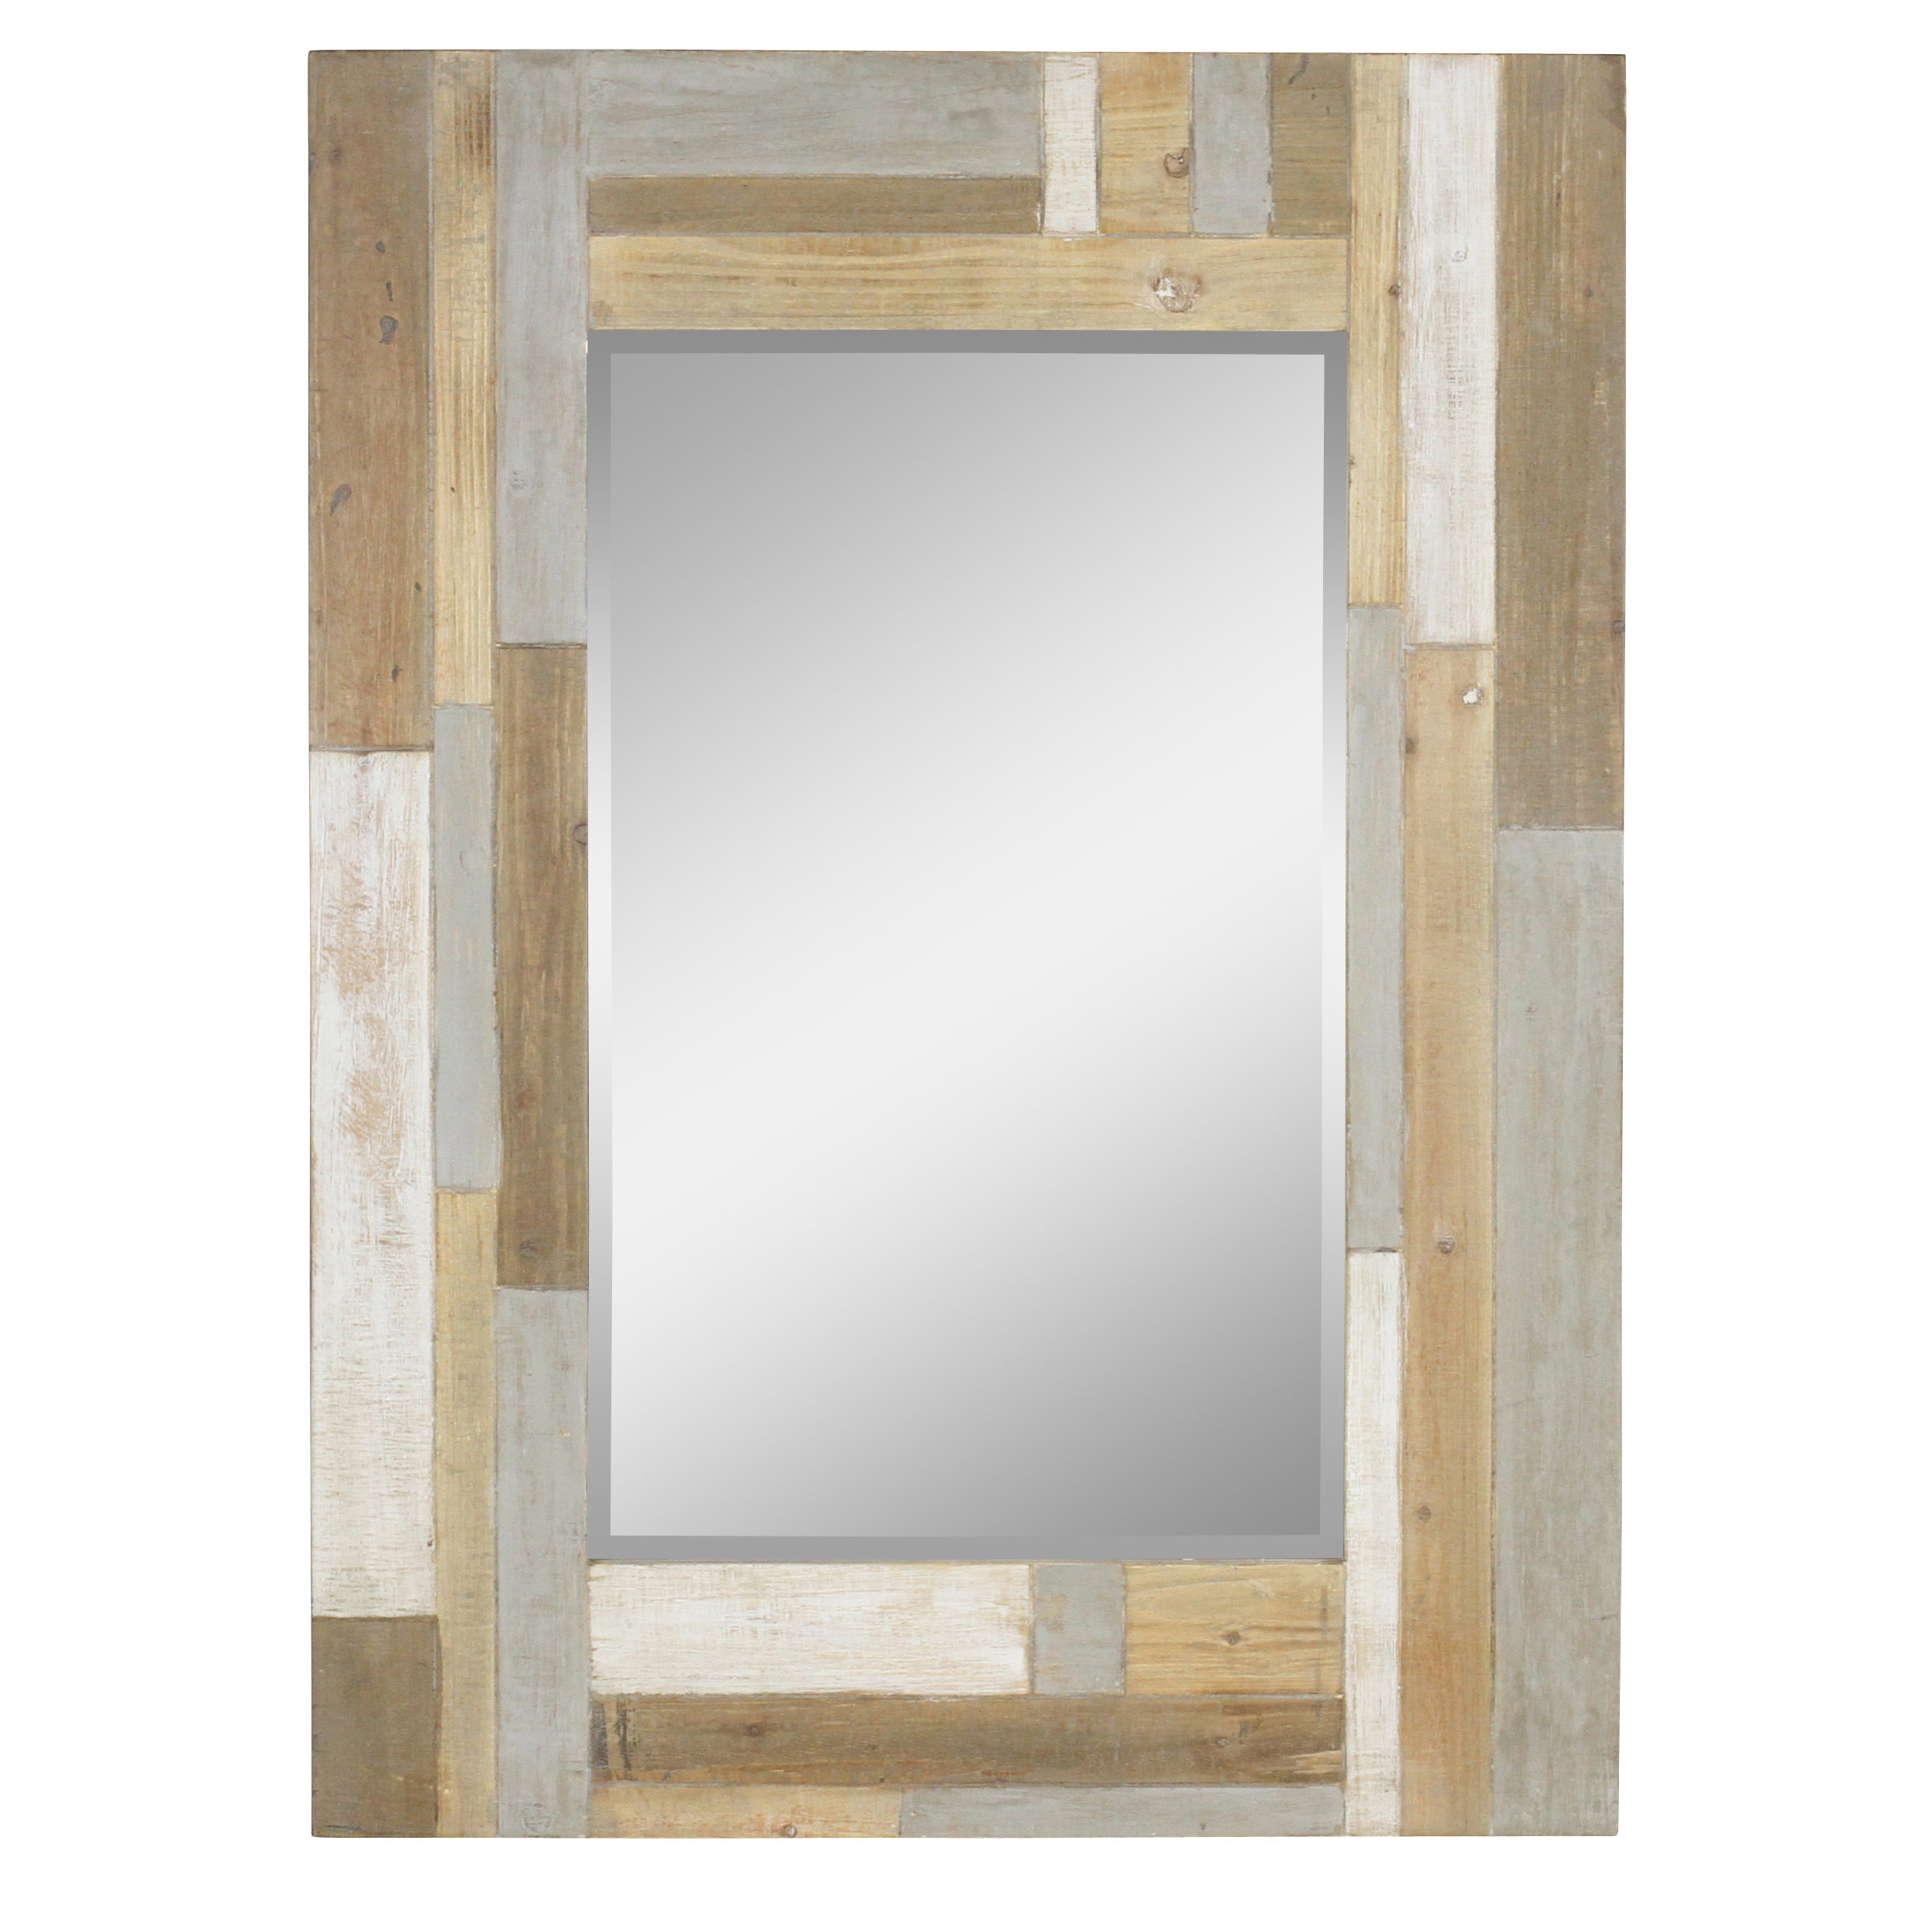 Modern Farmhouse Mirror | Wayfair Regarding Kist Farmhouse Wall Mirrors (View 19 of 20)